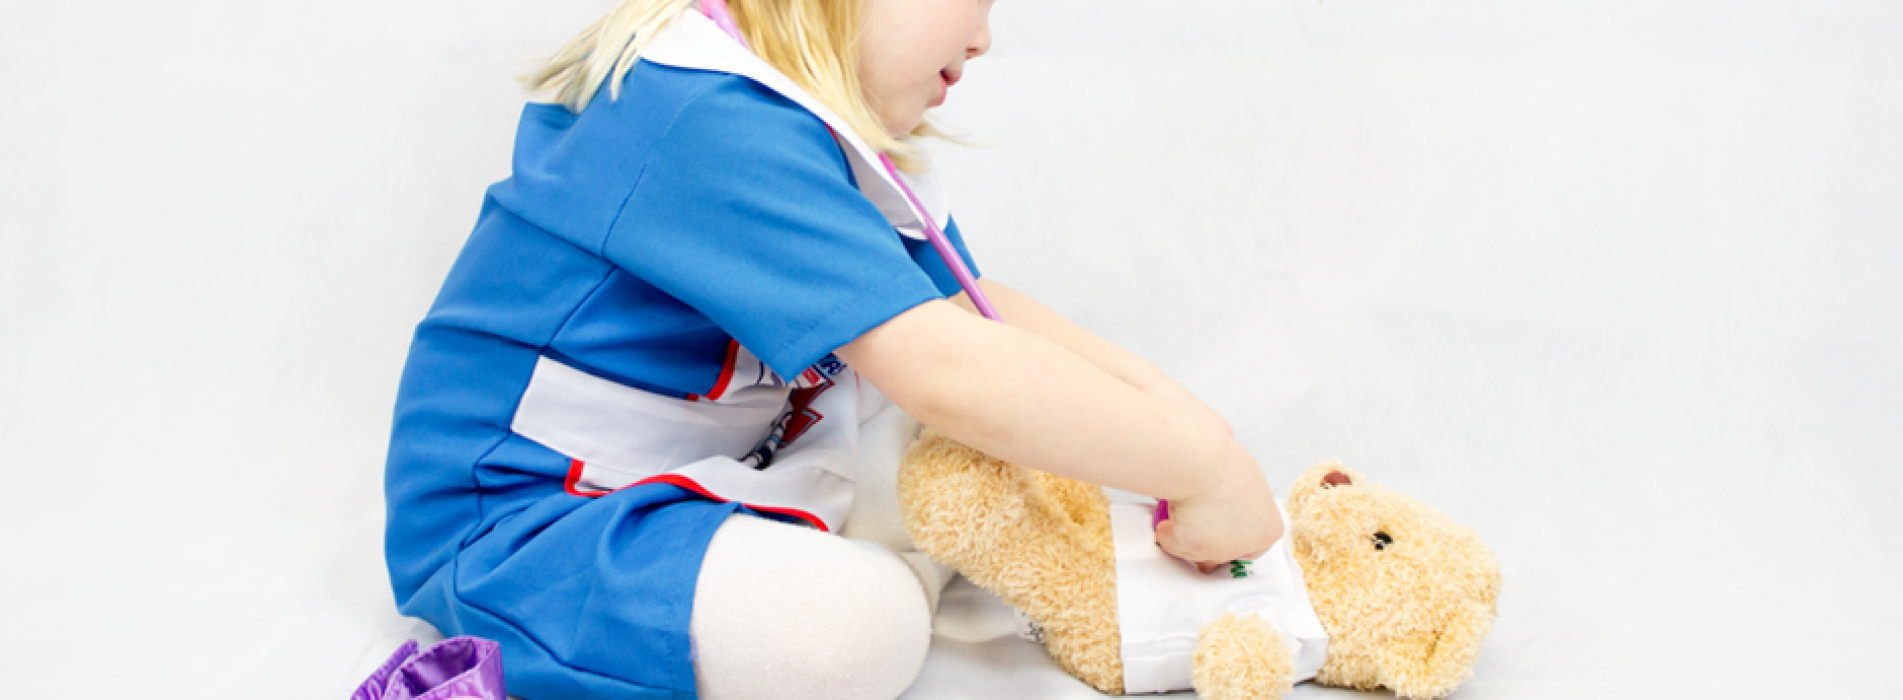 paediatric first aid training stoke on trent